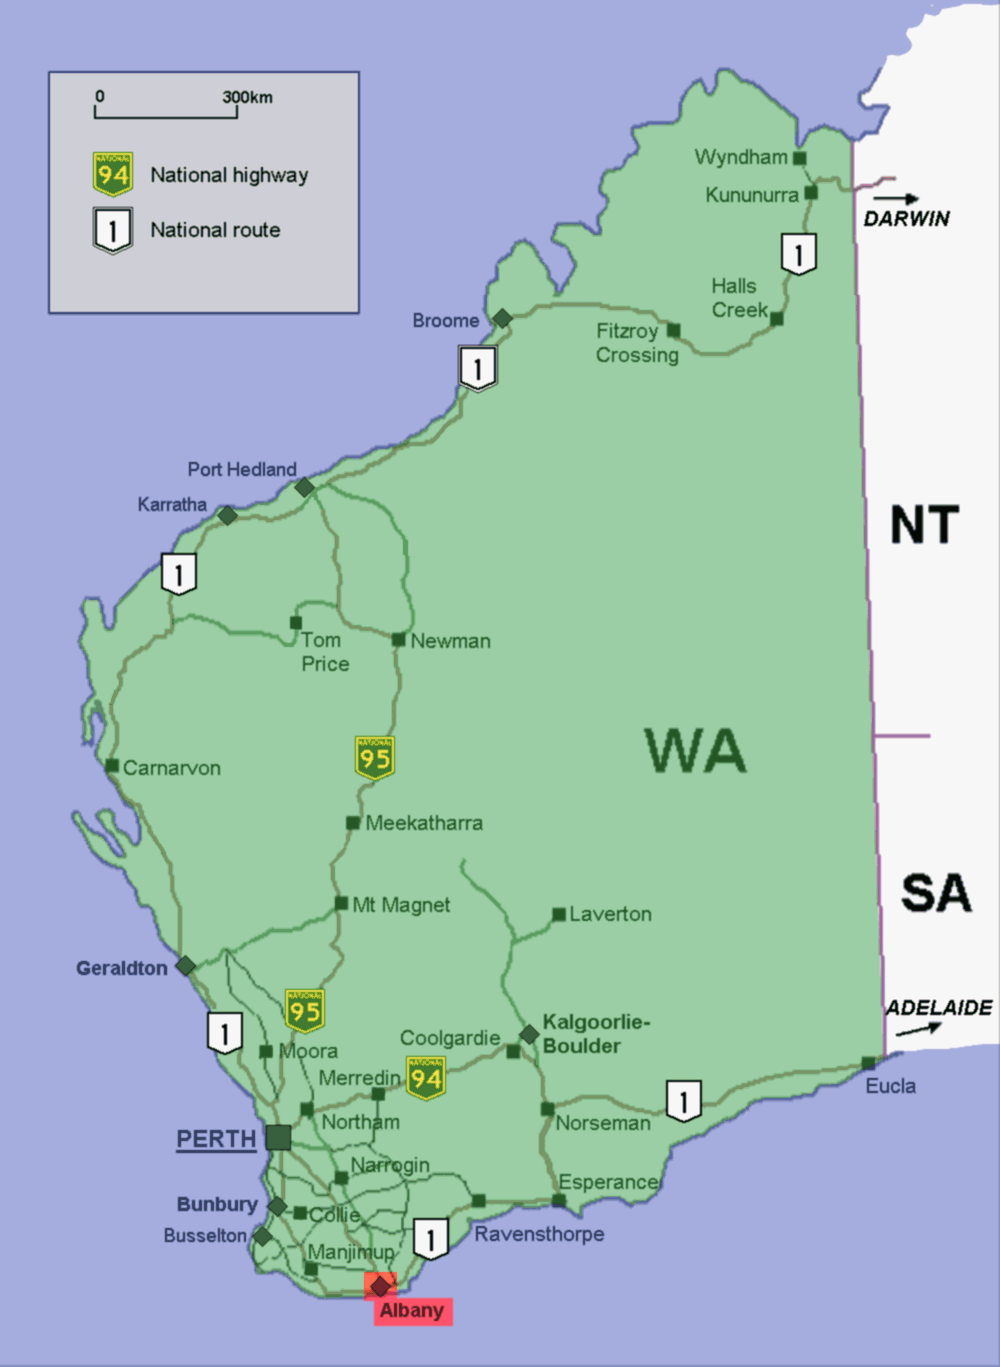 FileAlbany Location Map In Western AustraliaPNG  Wikipedia